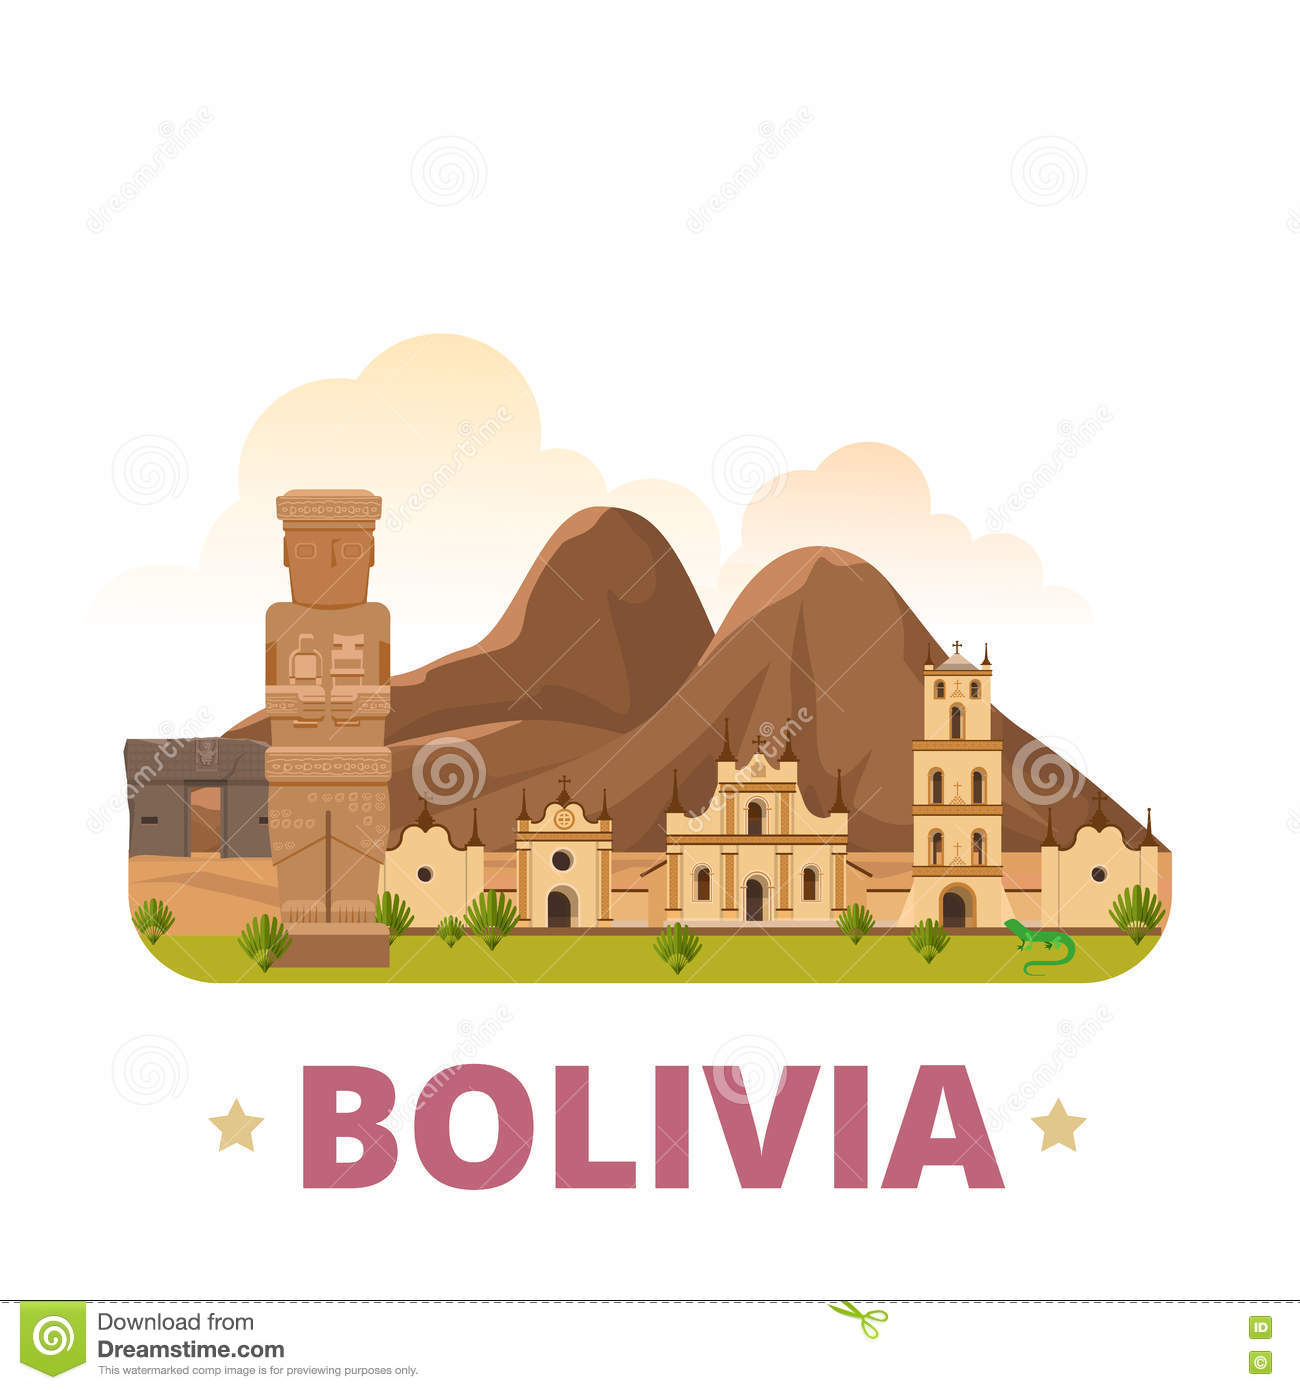 Bolivia country design template Flat cartoon style